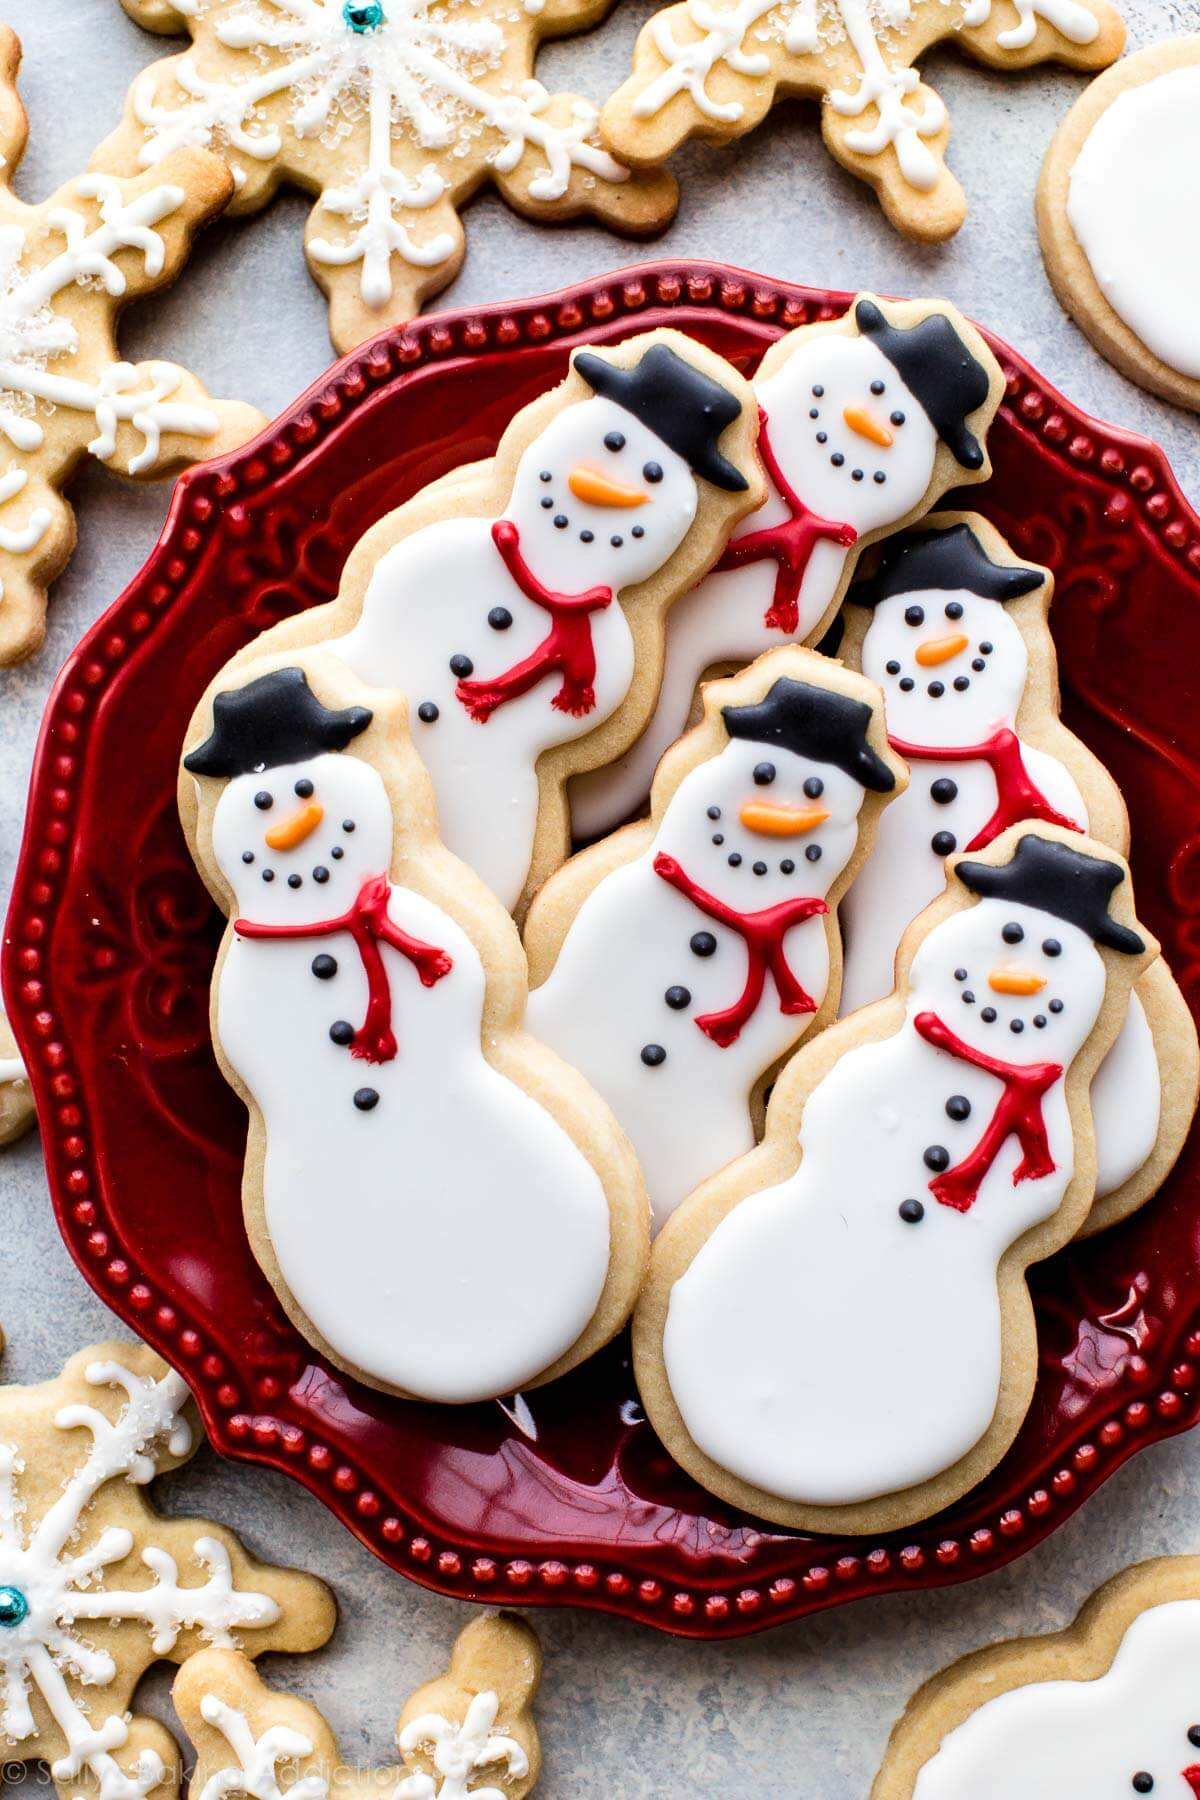 learn how to make adorable snowman and snowflake sugar cookies with royal icing christmas cookies - Christmas Sugar Cookie Recipe